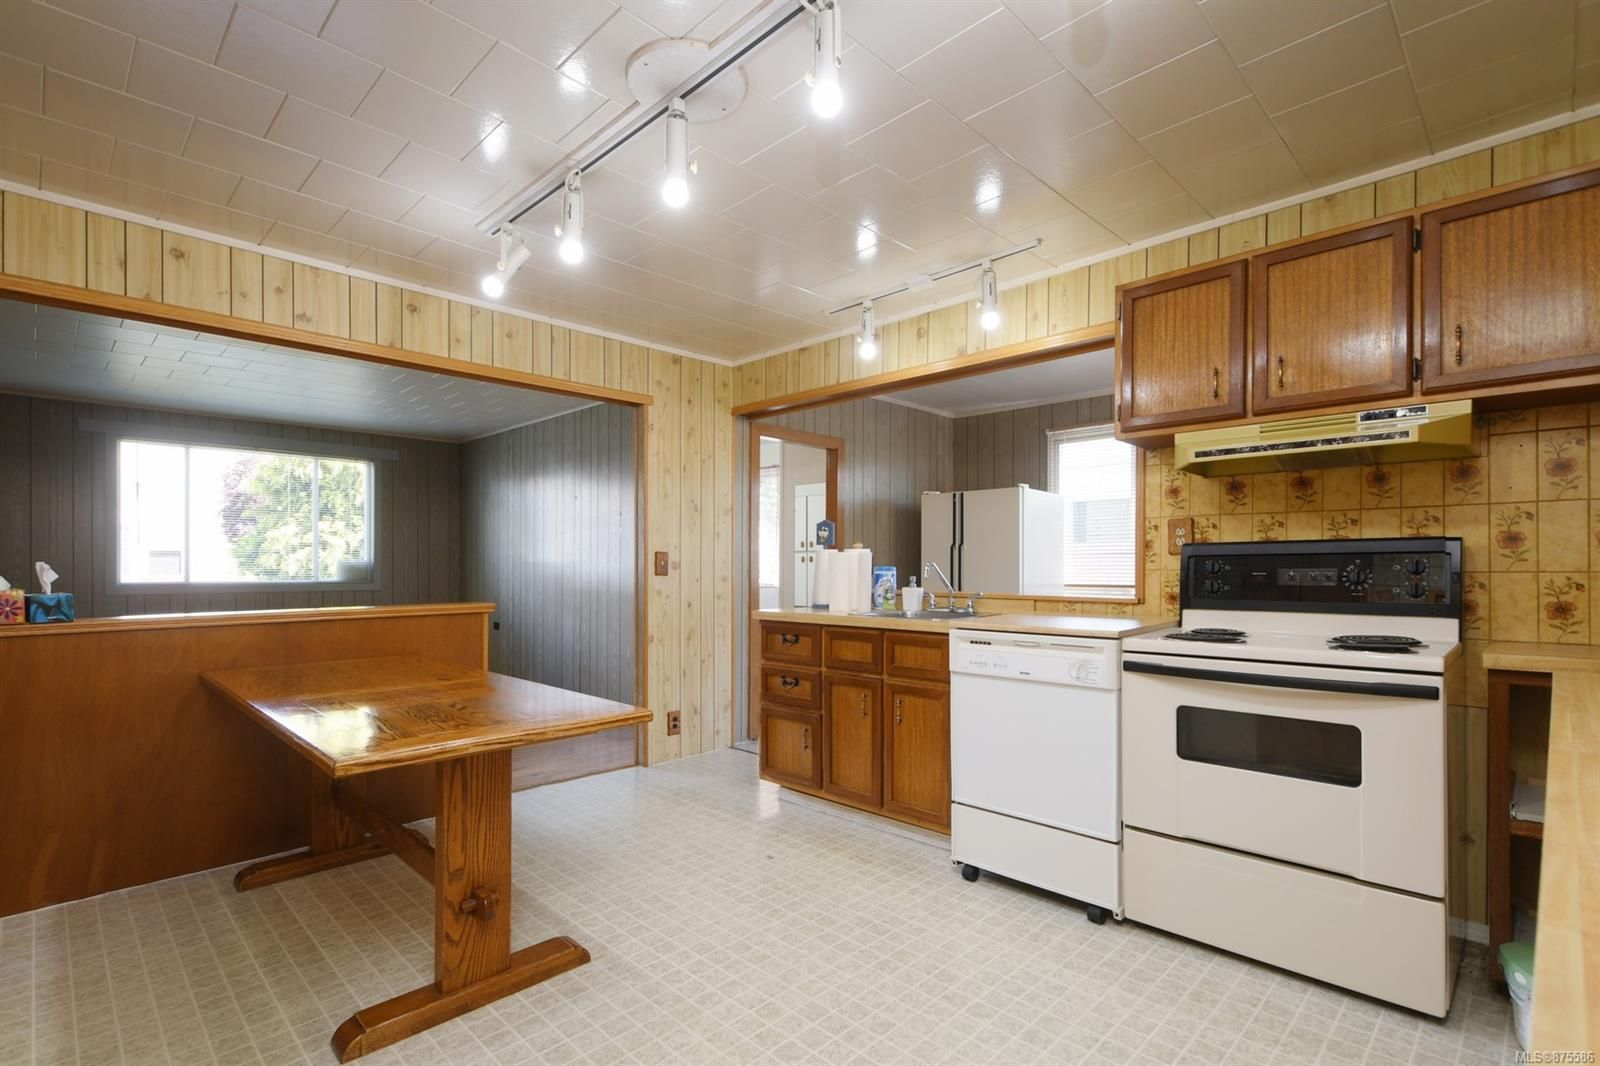 Photo 5: Photos: 55 Ontario St in : Vi James Bay House for sale (Victoria)  : MLS®# 875586